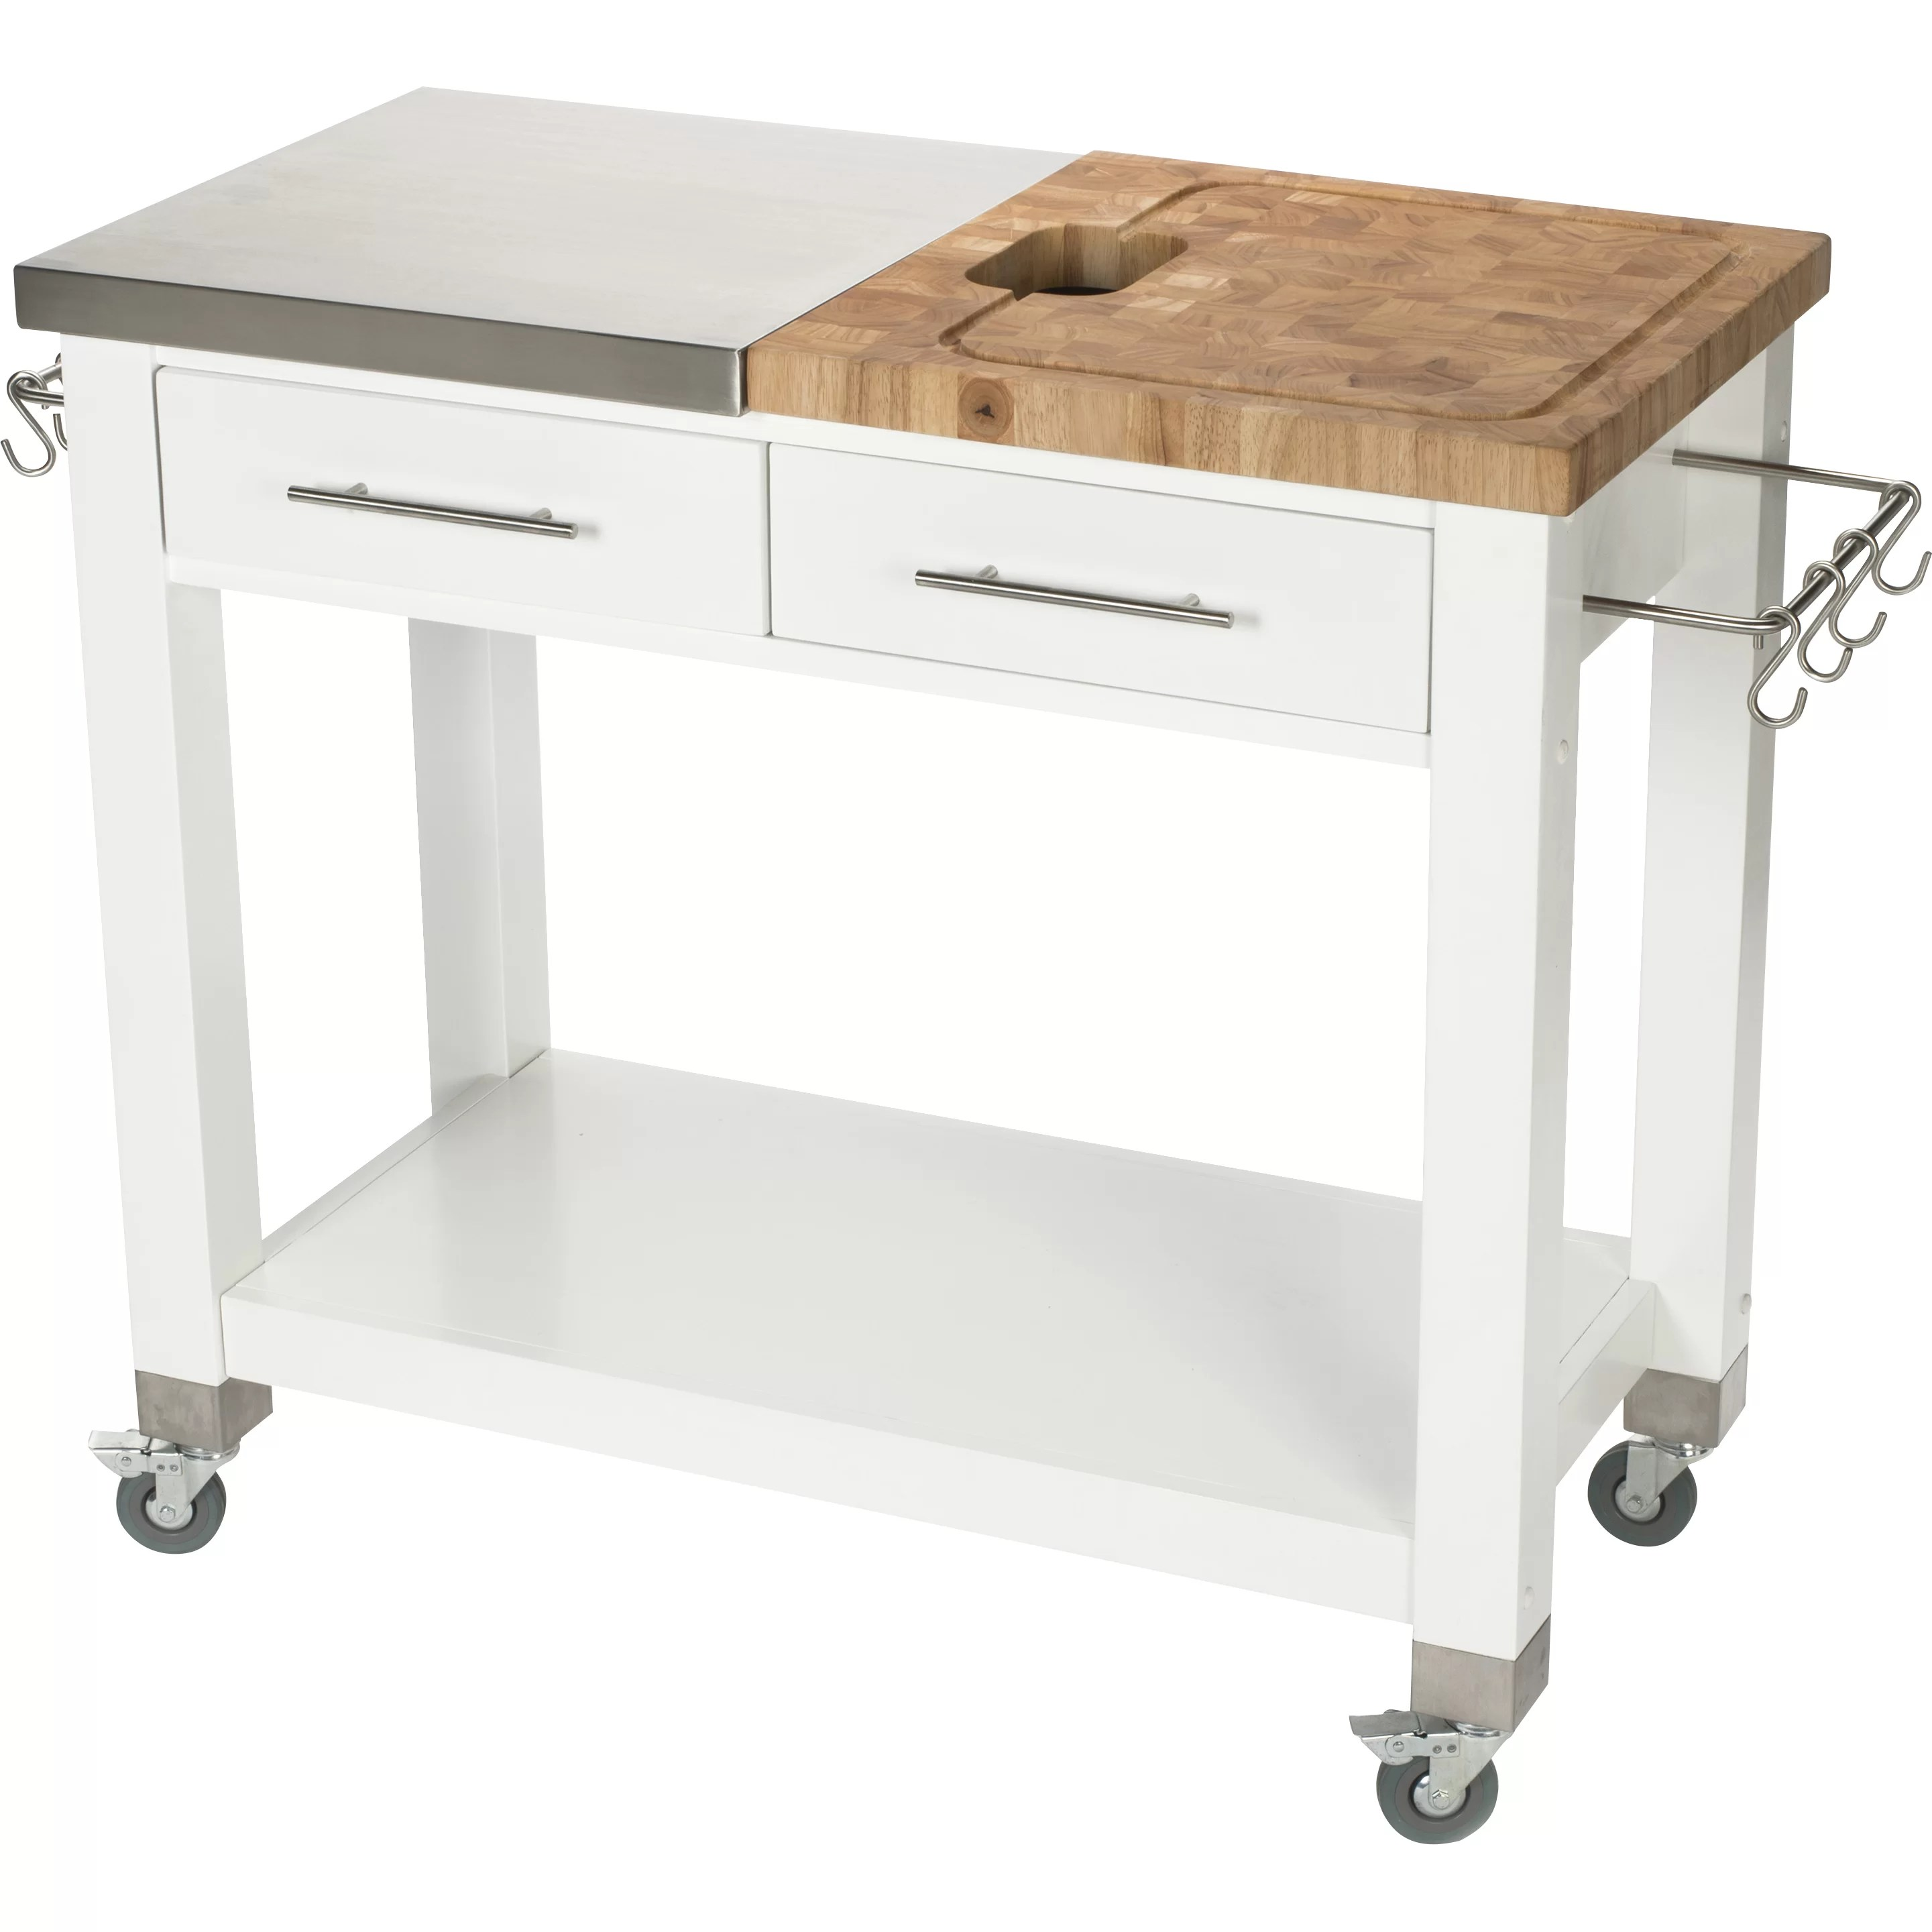 chris and kitchen cart vintage curtains pro chef island with butcher block